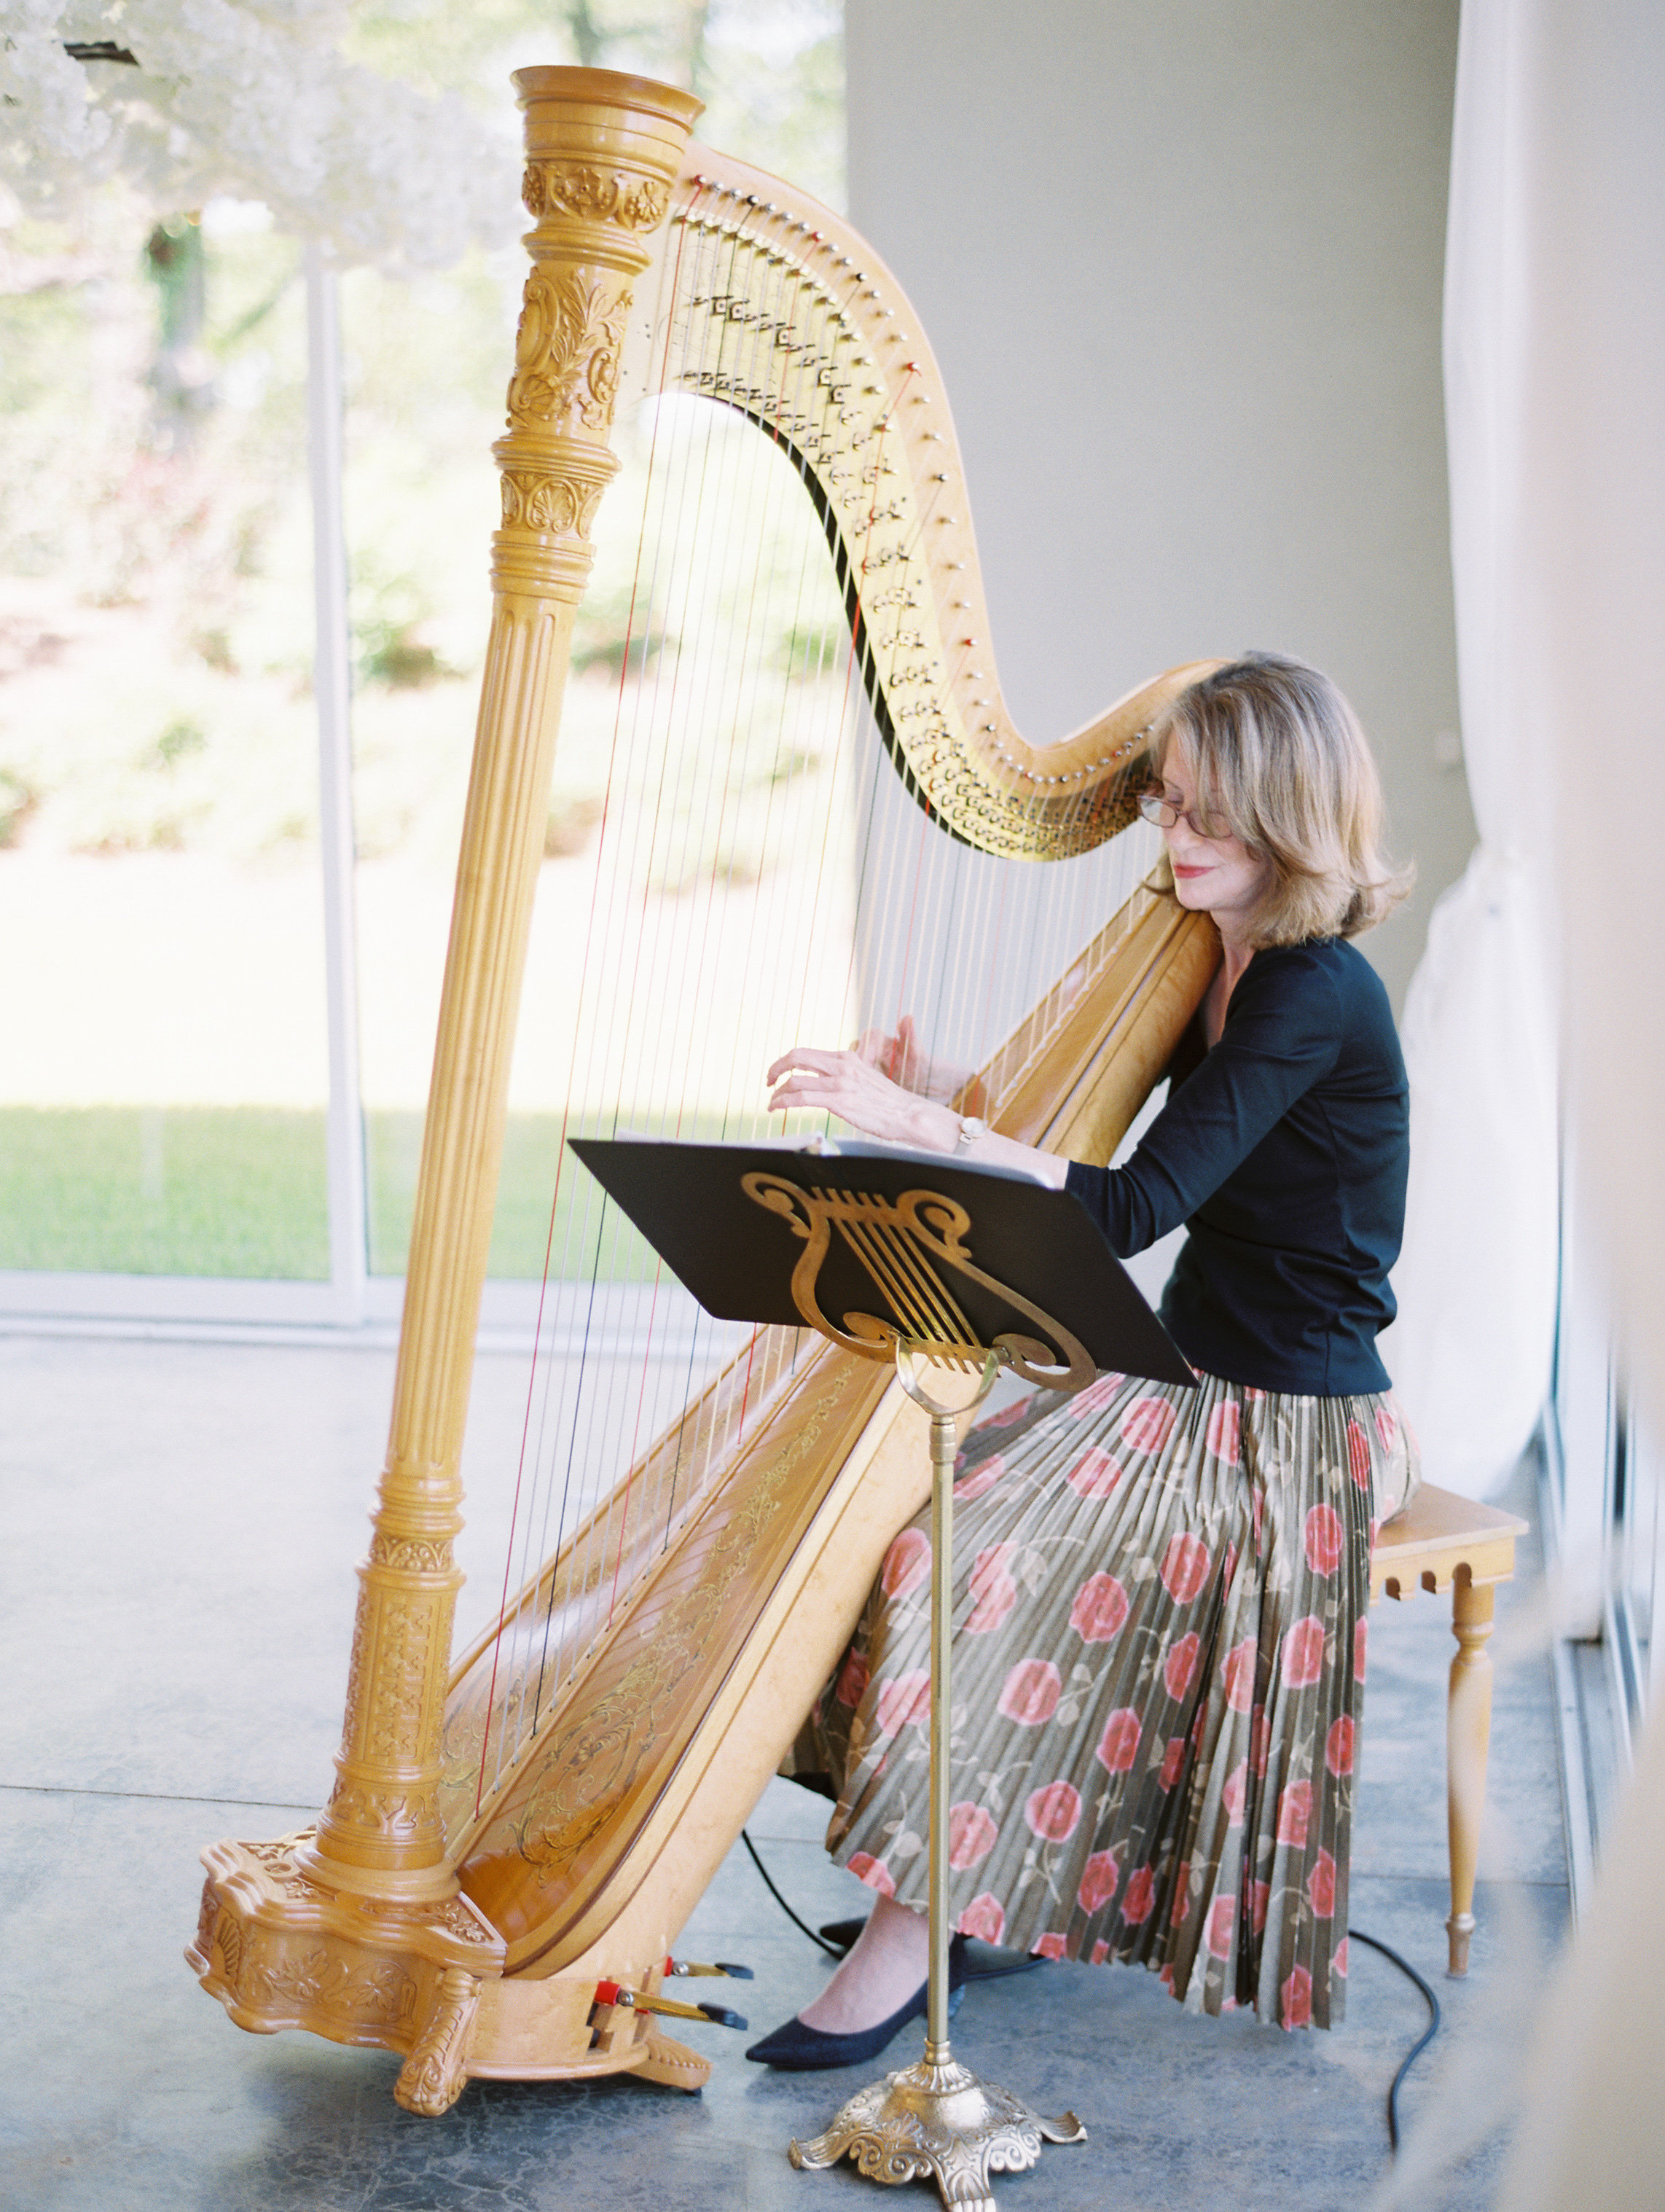 niara allen wedding harpist